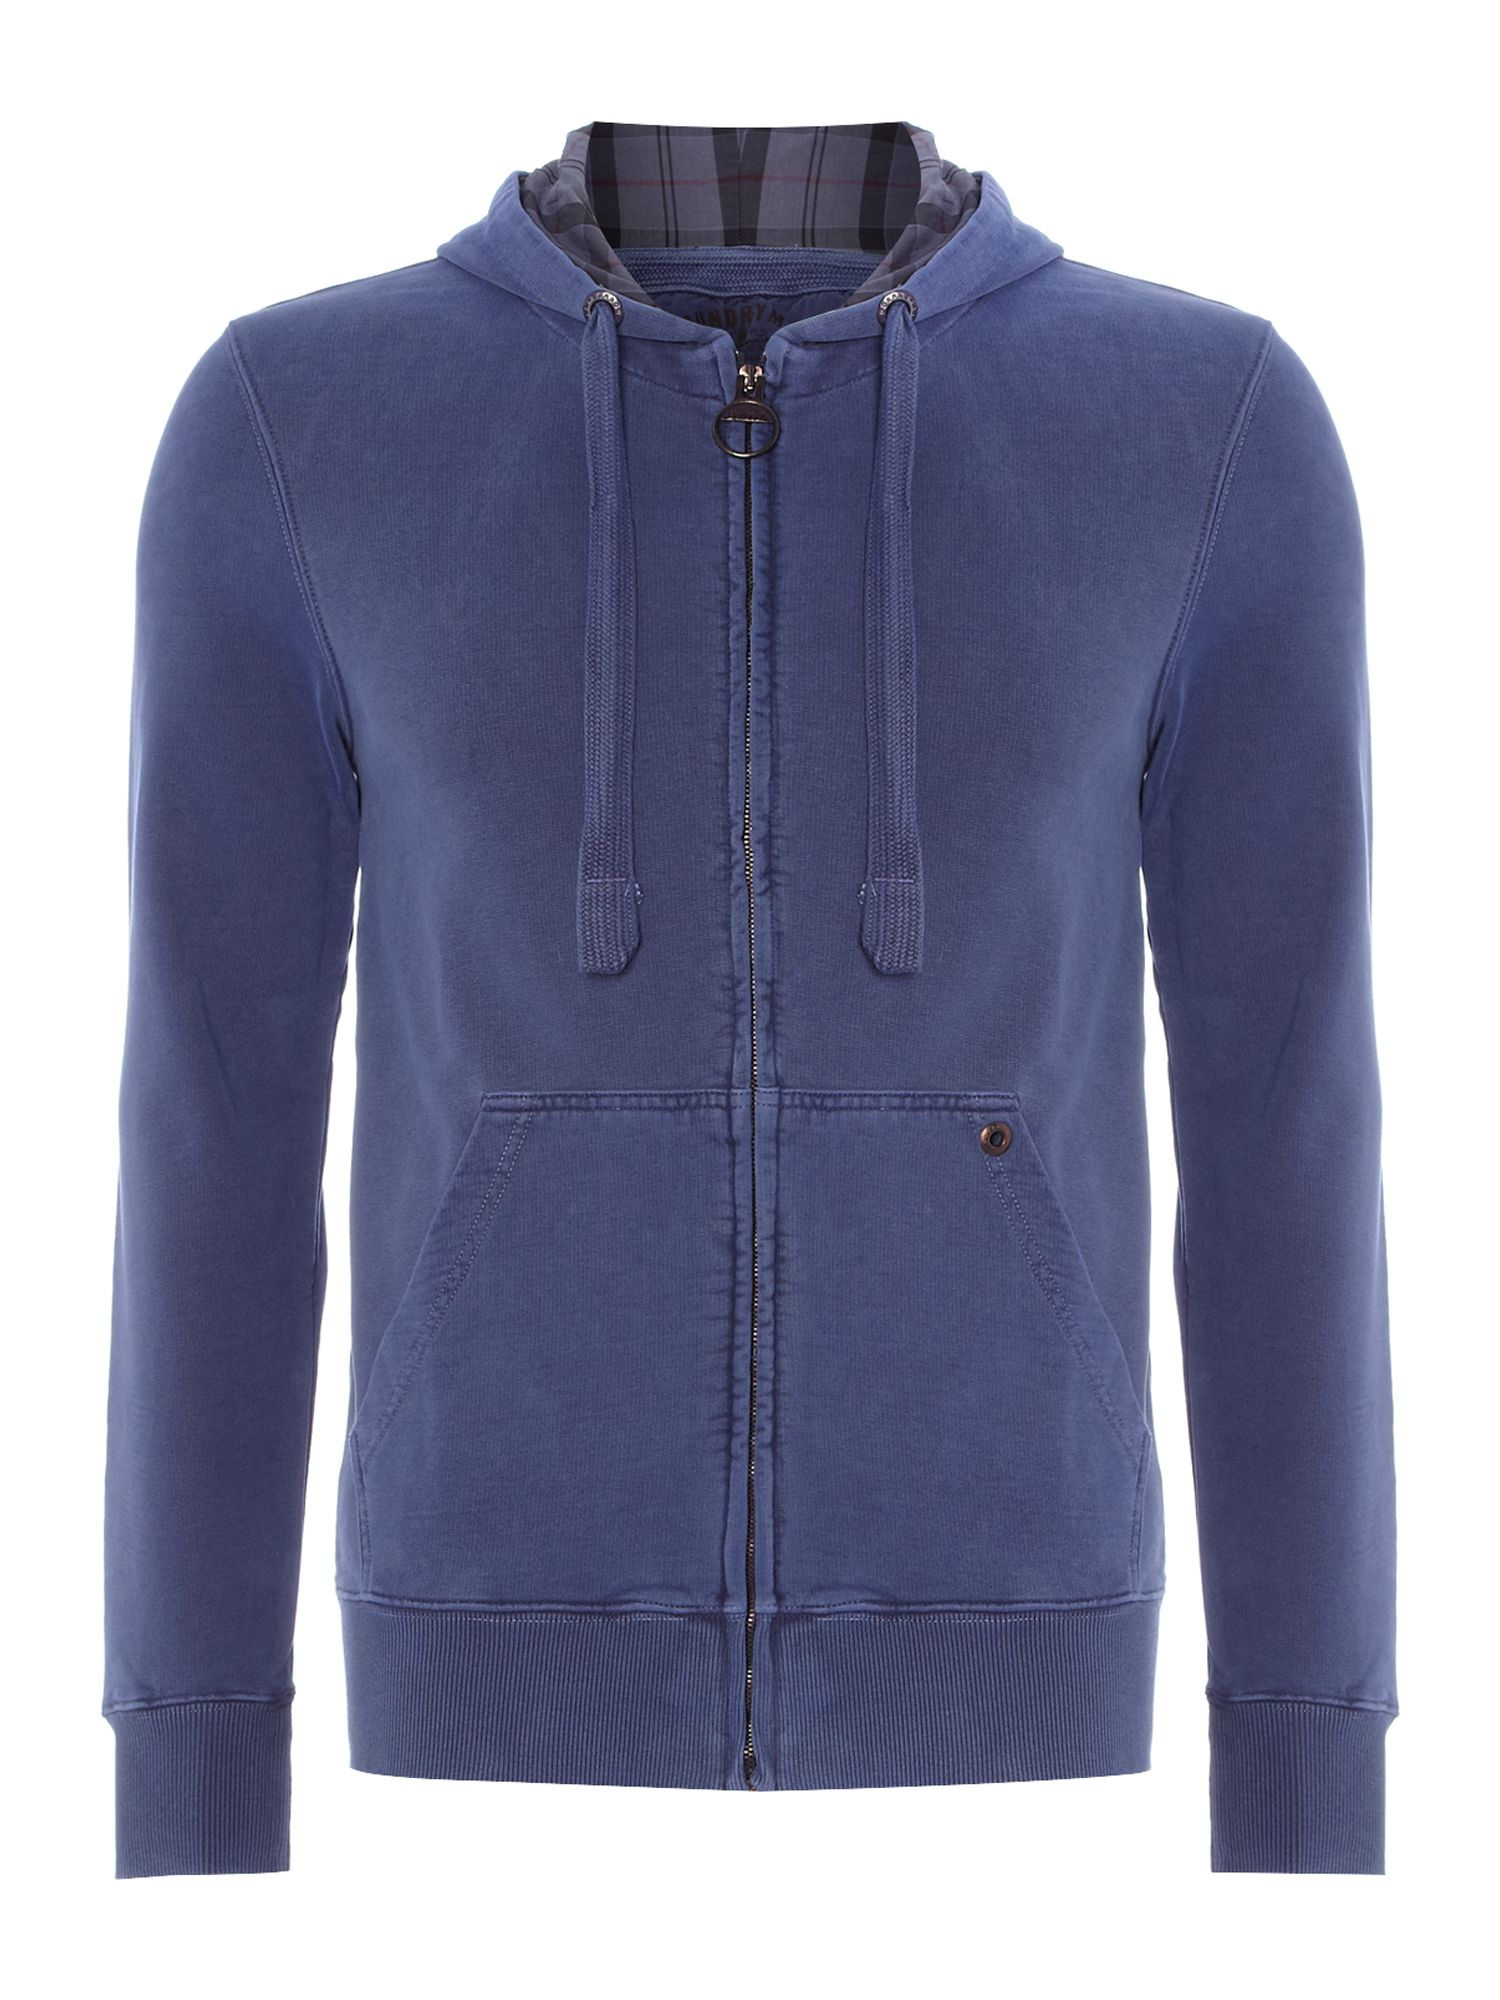 Laundered hooded zip through sweatshirt